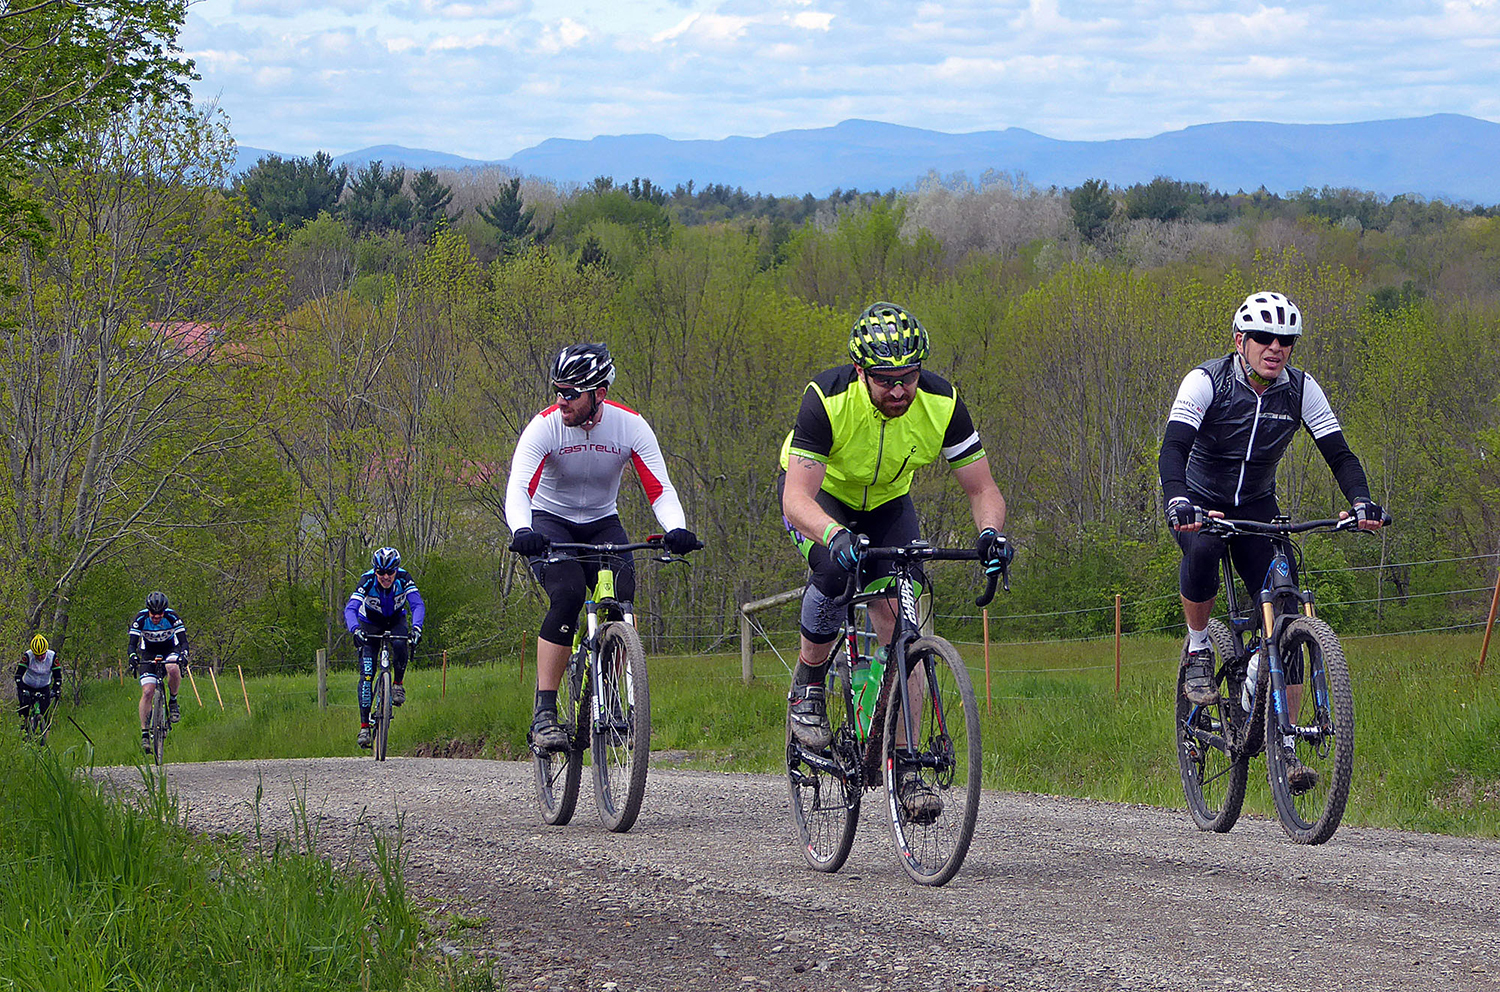 Riders on Jefferson Hill Road at the 2016 Farmer's Daughter Gravel Grinder.  Dave Kraus